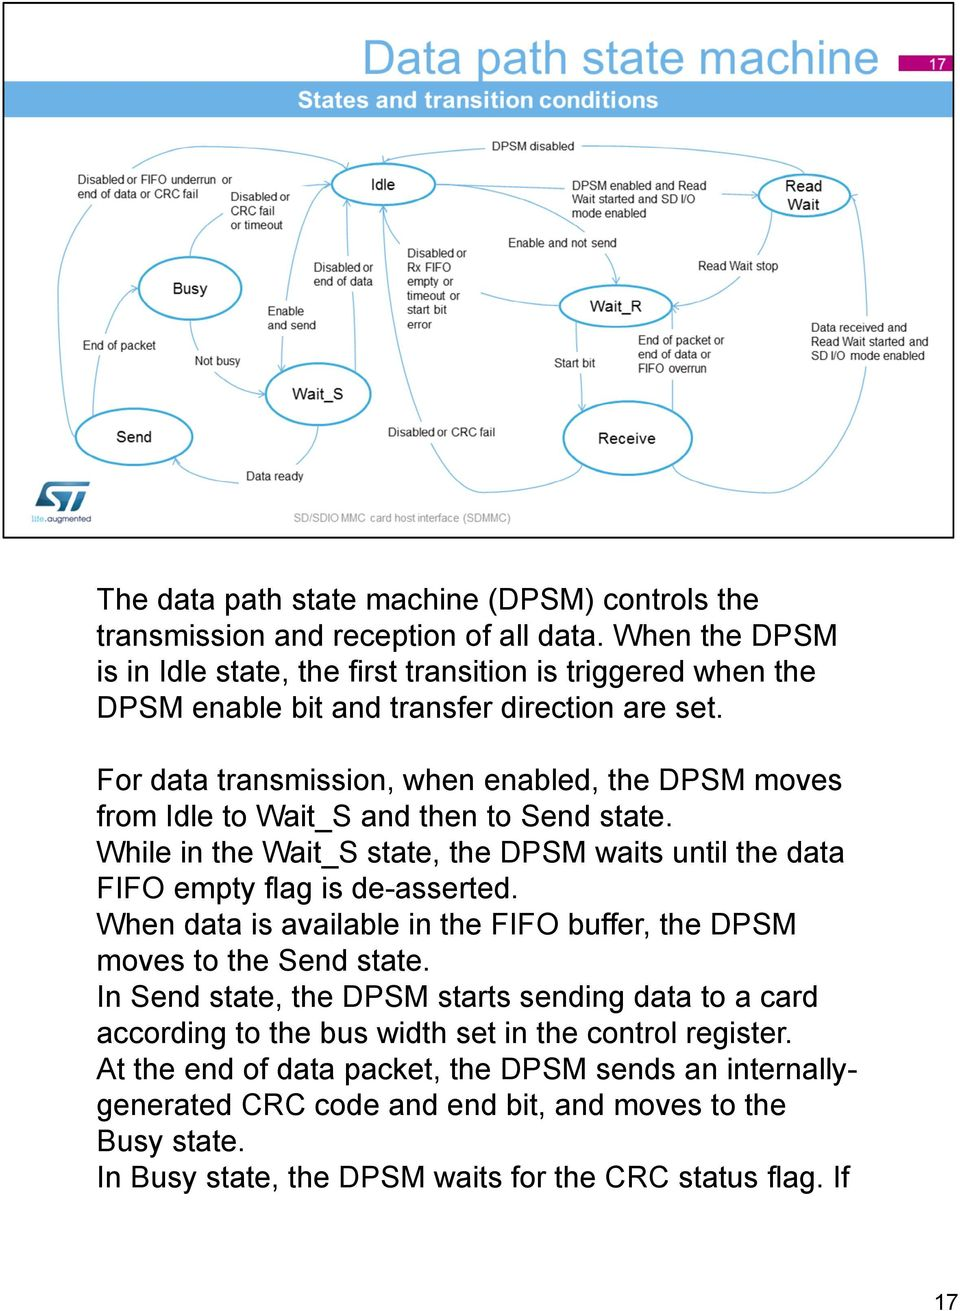 For data transmission, when enabled, the DPSM moves from Idle to Wait_S and then to Send state. While in the Wait_S state, the DPSM waits until the data FIFO empty flag is de-asserted.